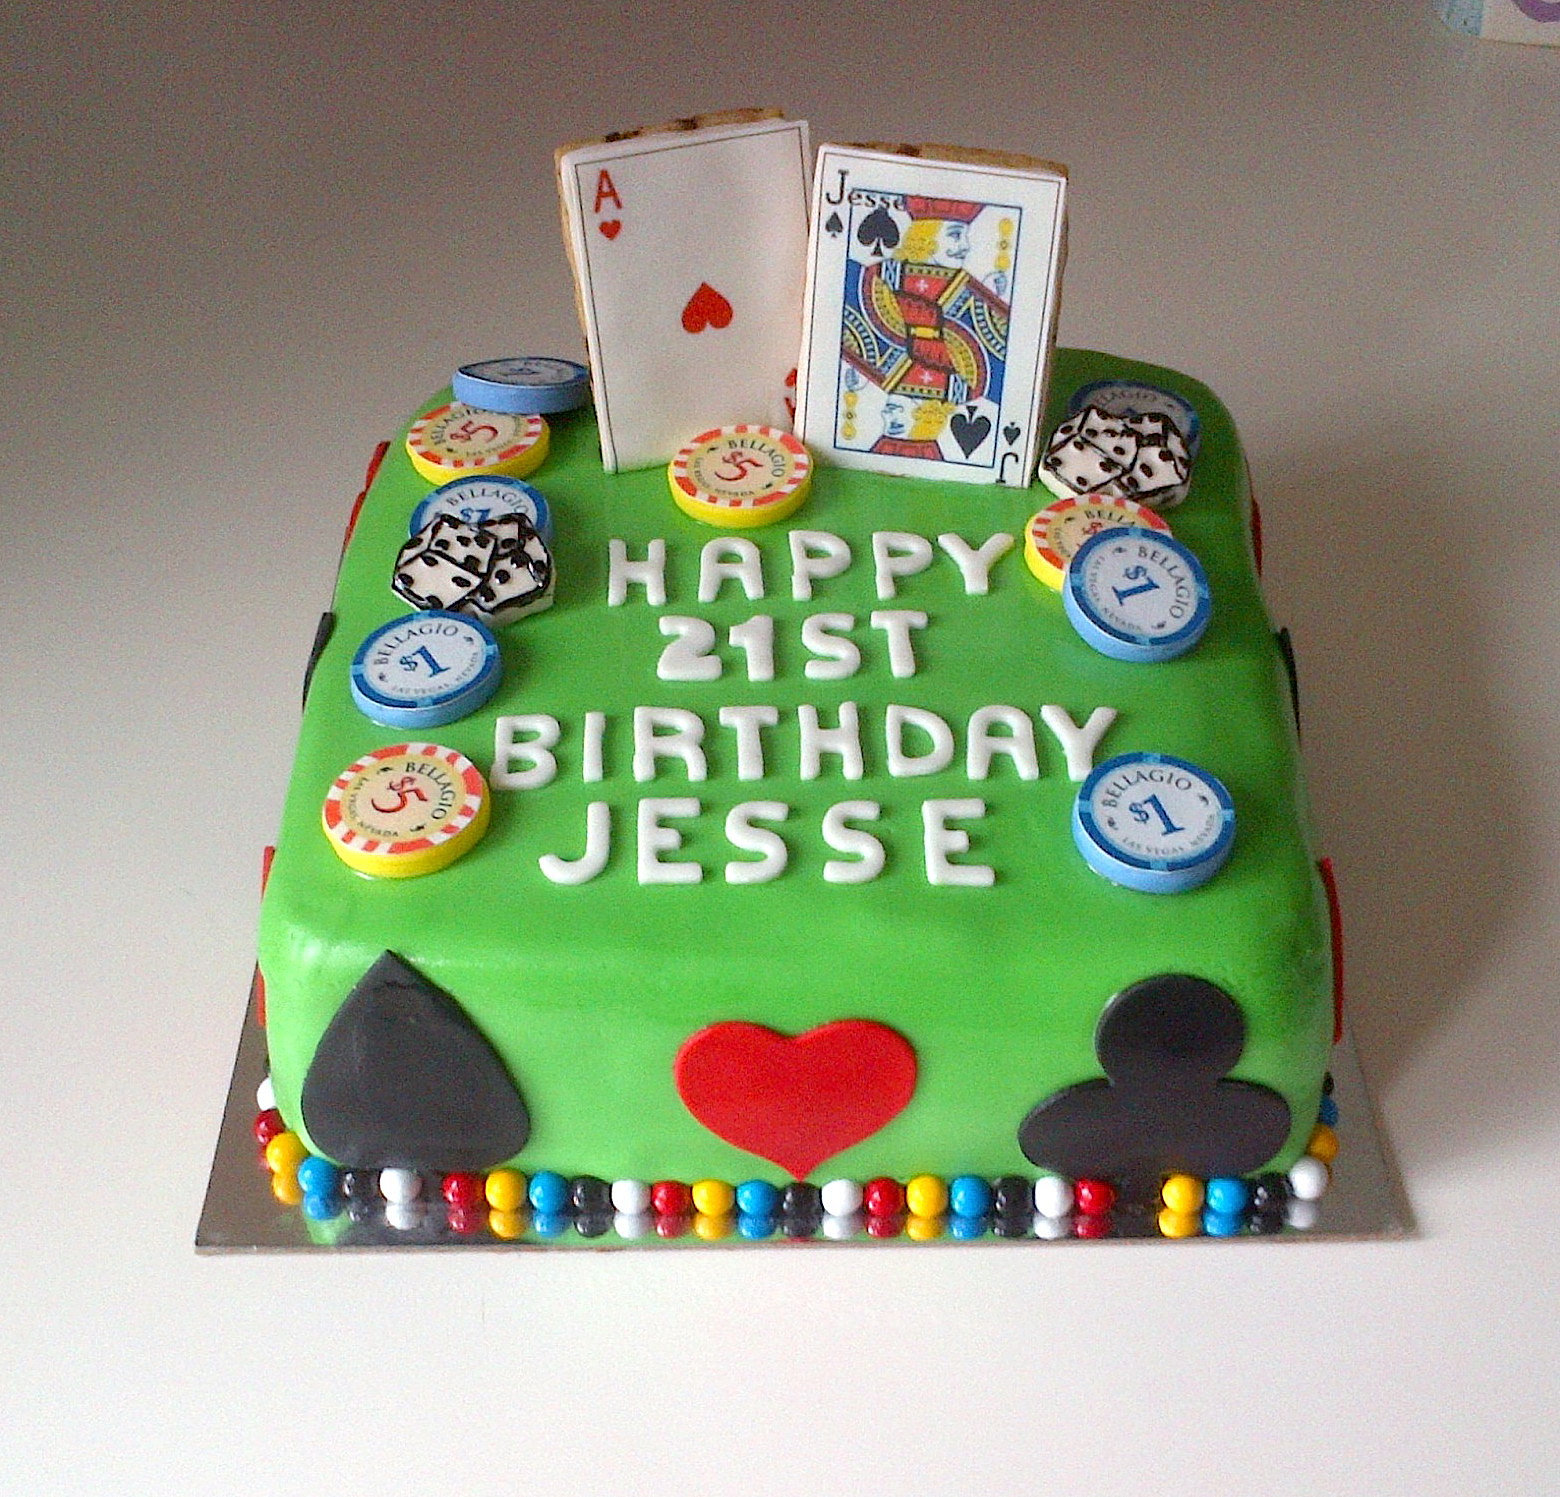 Cookie Cake Designs For 21st Birthday : CakesByPenny.ca Custom Cakes Cookies Cupcakes Greater ...